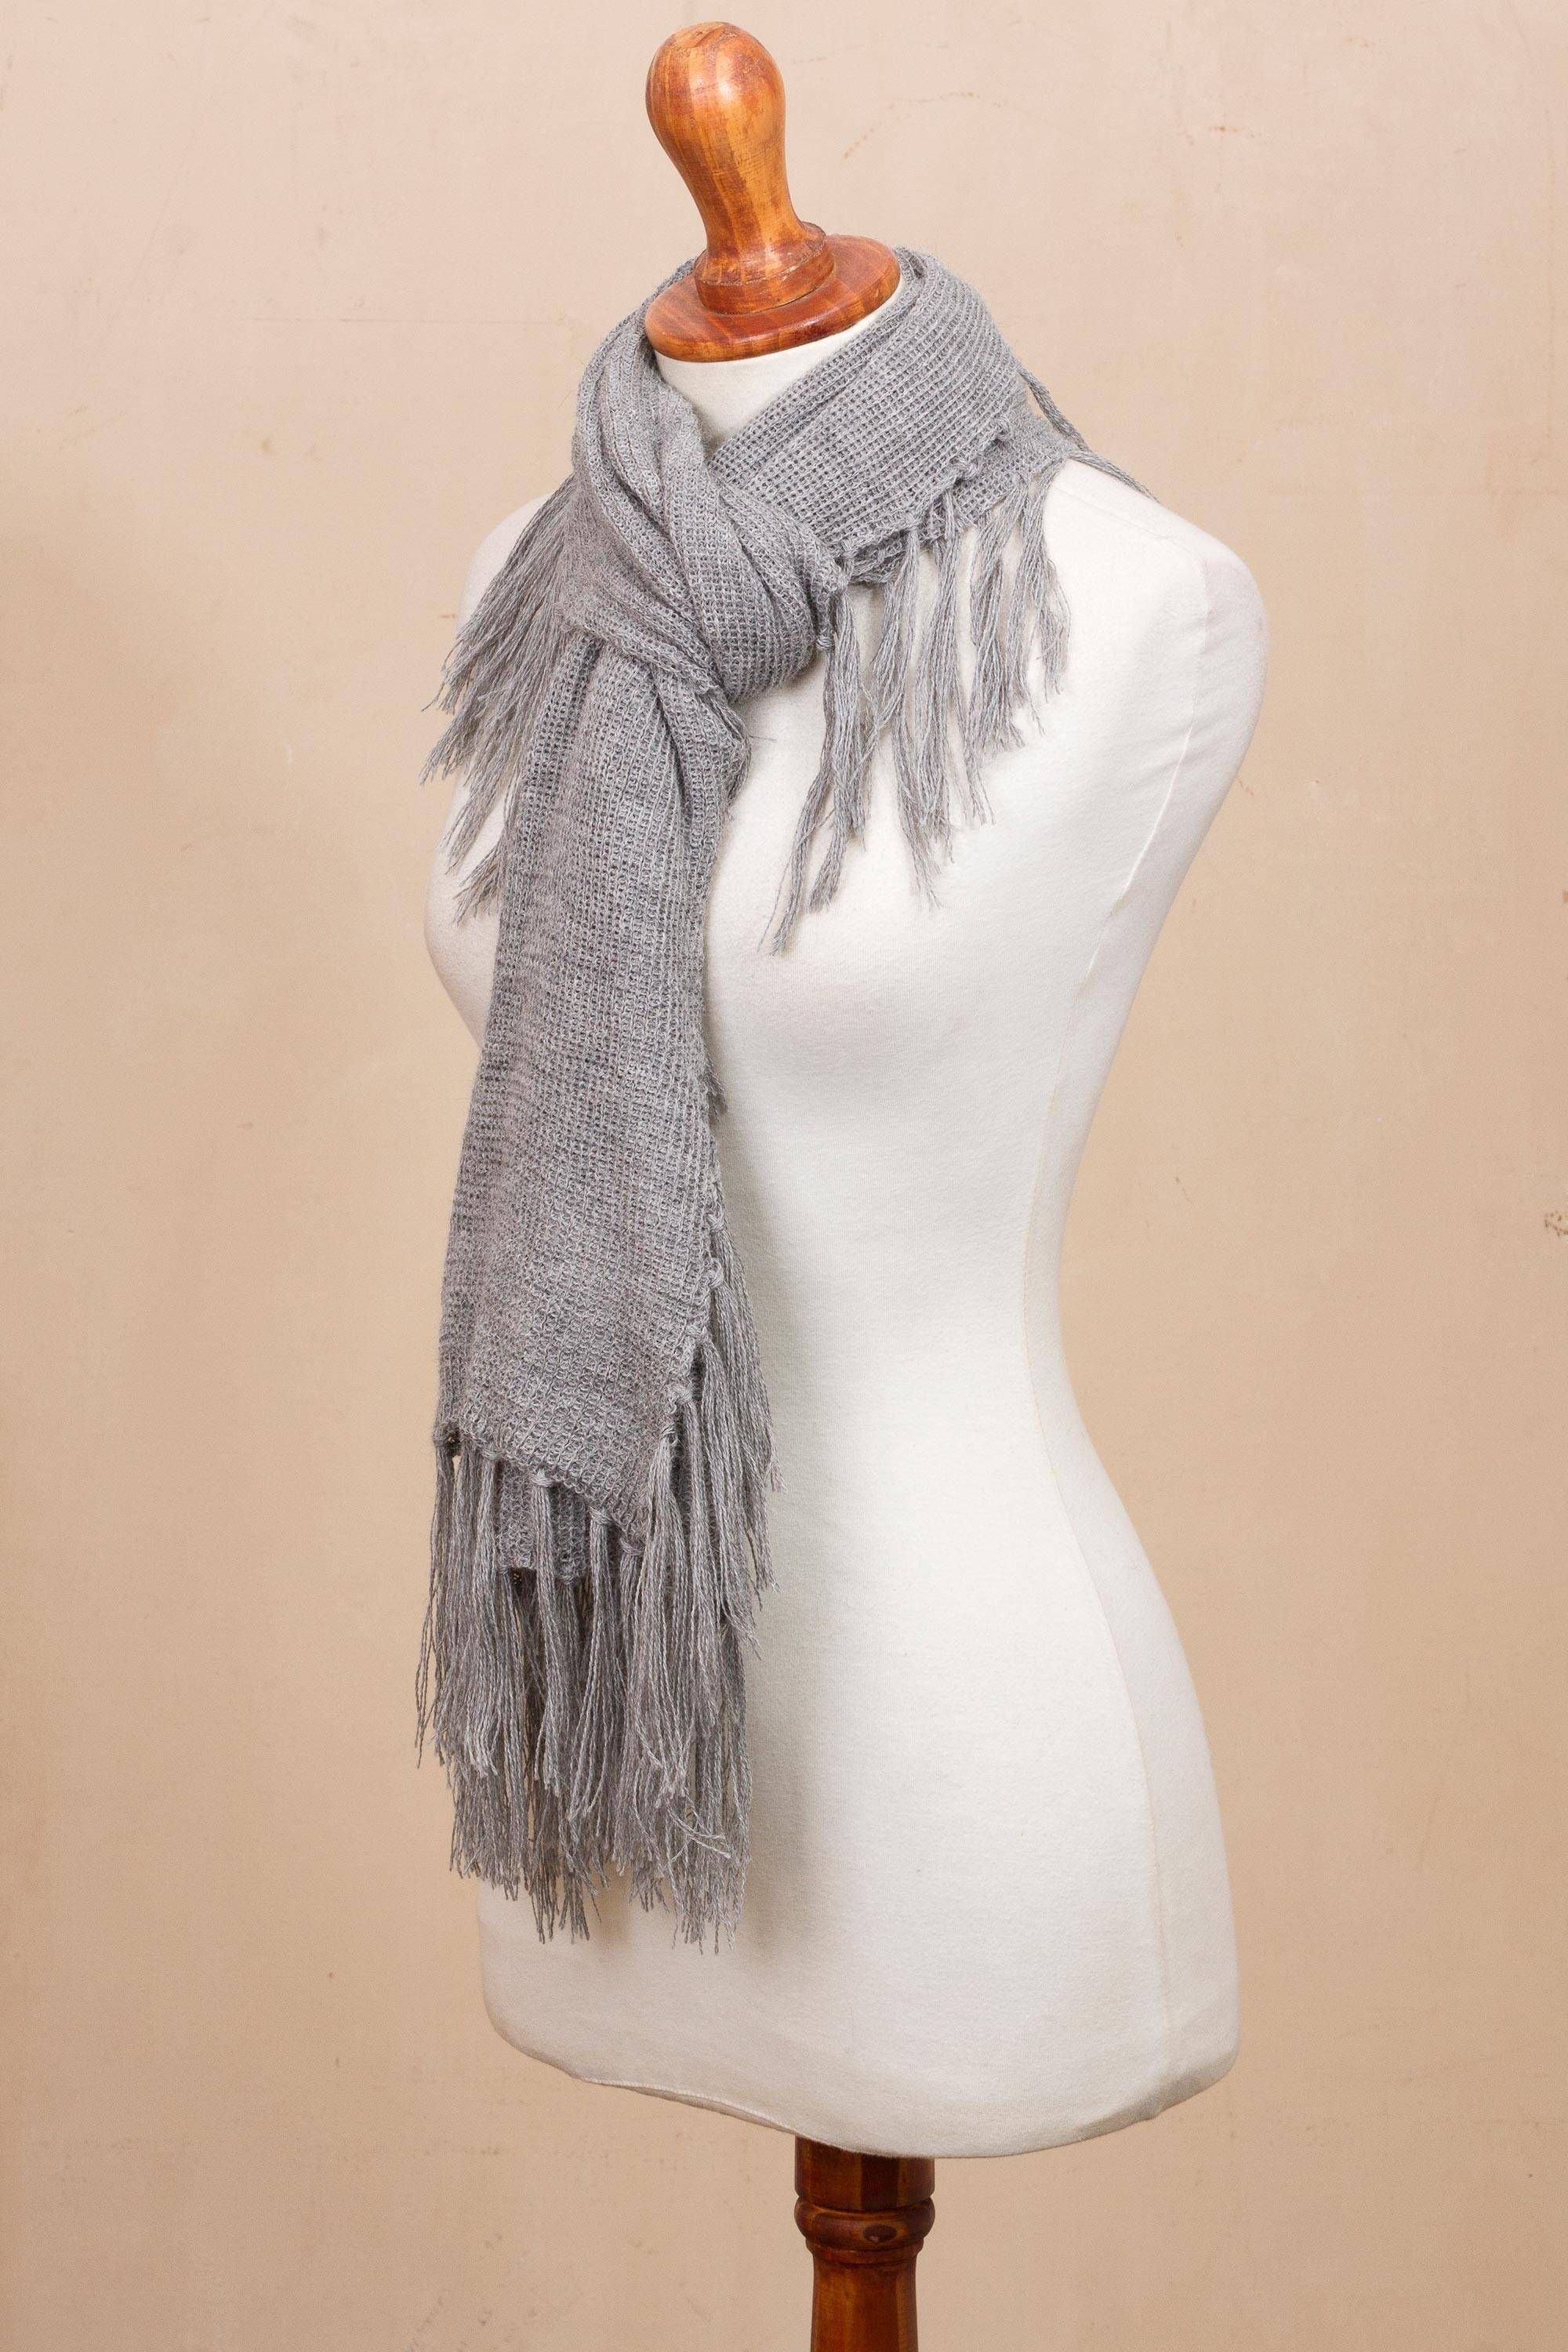 Fringed 100 Baby Alpaca Scarf In Smoke From Peru Fringed Style In Smoke Alpaca Scarf Baby Alpaca Scarf Casual Street Style